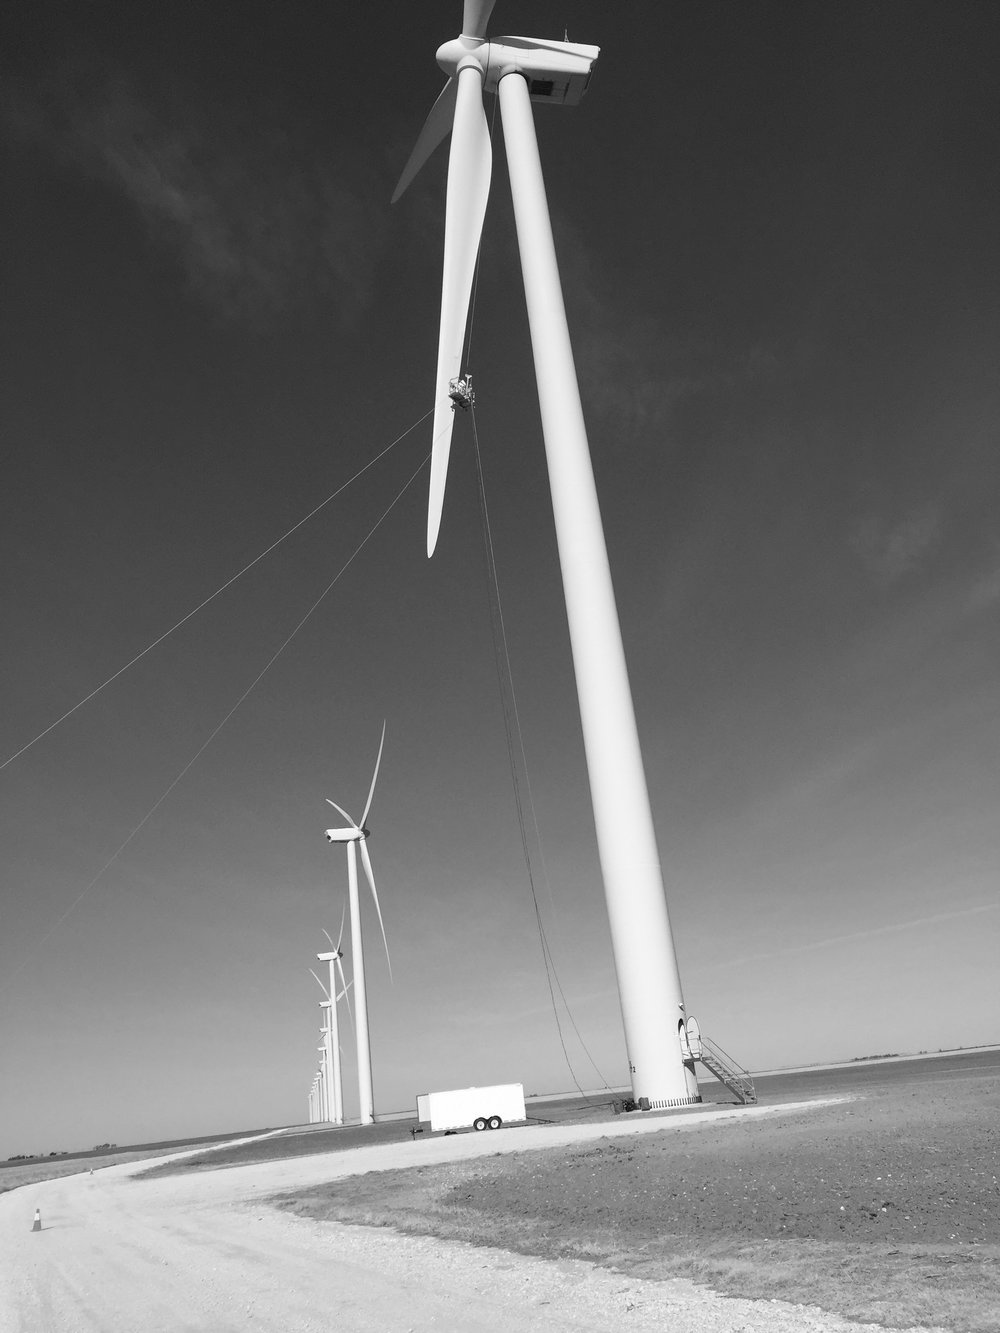 Anacacho Wind Farm -